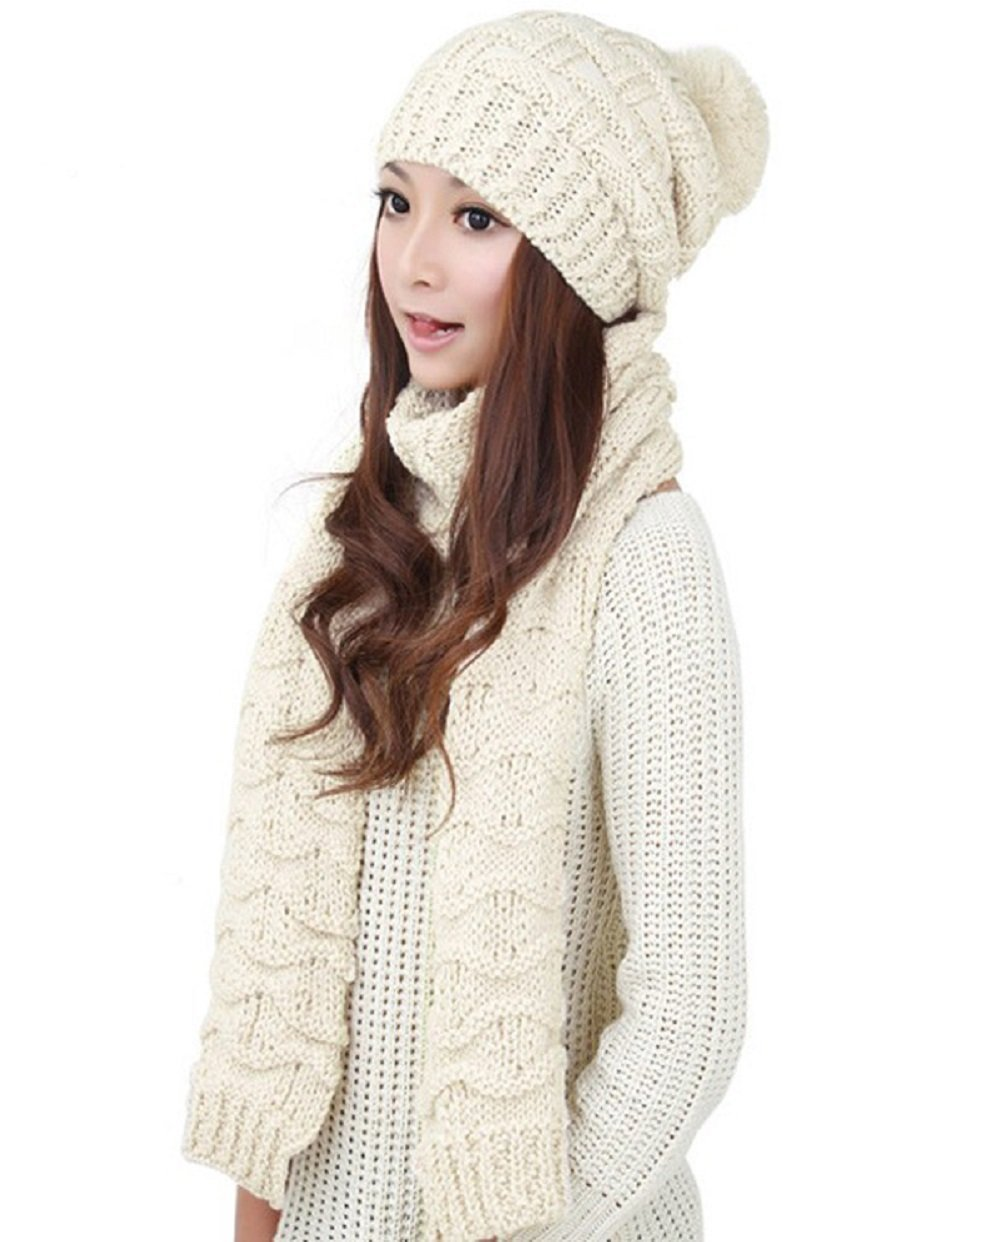 TCCSTAR Women Girls Knitted Hat Scarf Set Fashion Winter Warm Hat With Attached Scarf … (Cream White)